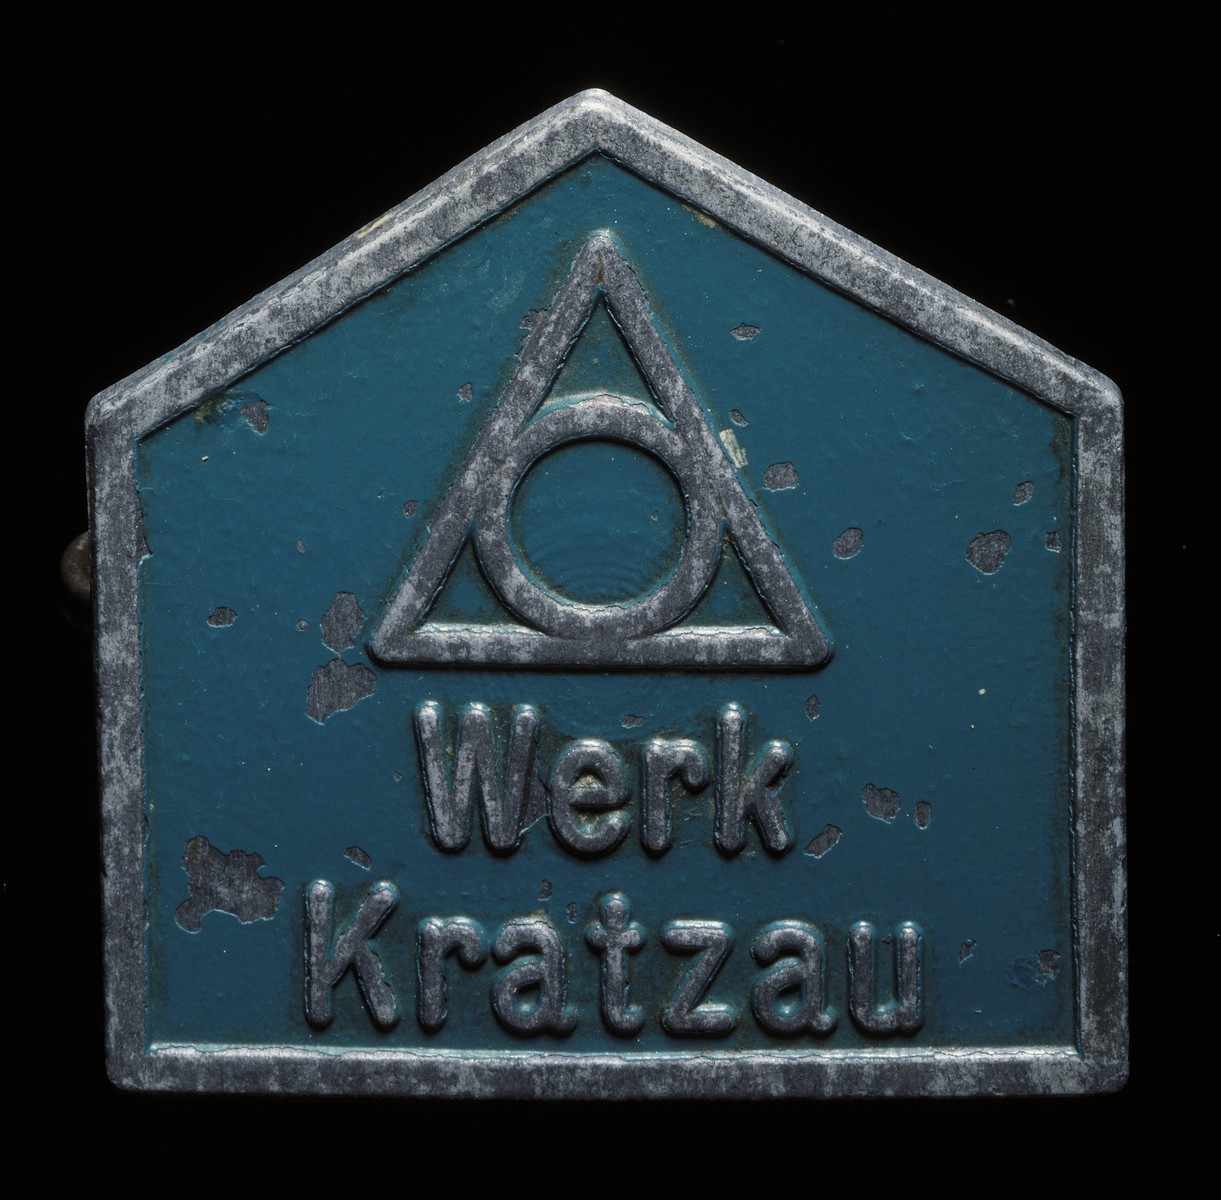 Five-sided badge issued to Helen Waterford identifying her as a prisoner from the Kratzau-Chrastava labor camp, a satellite camp of Gross Rosen.  Waterford was interned at the camp from October 1944 to May 1945.